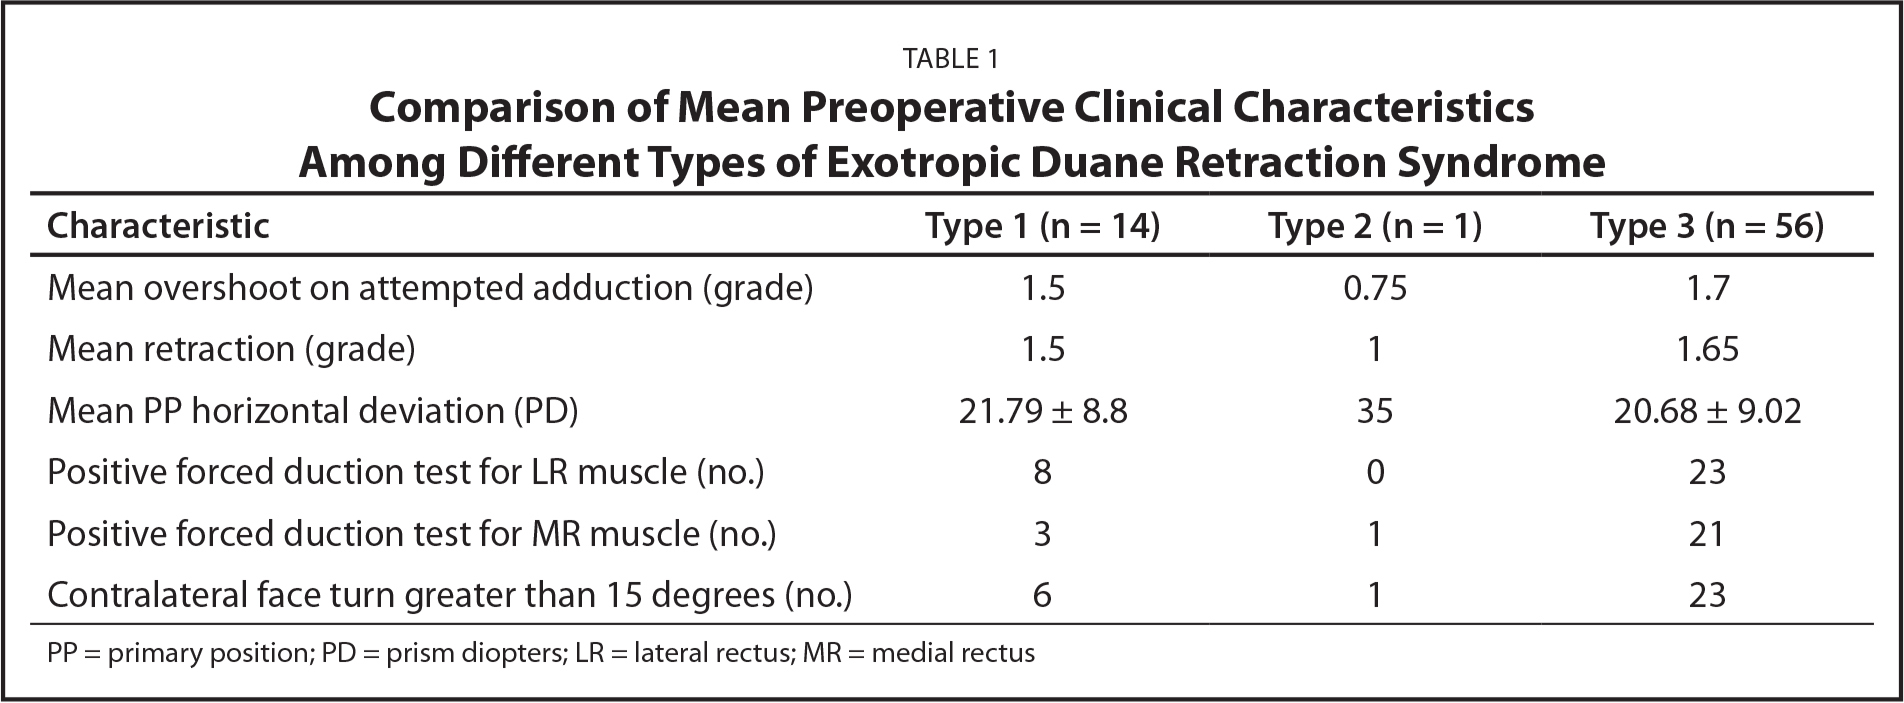 Comparison of Mean Preoperative Clinical Characteristics Among Different Types of Exotropic Duane Retraction Syndrome